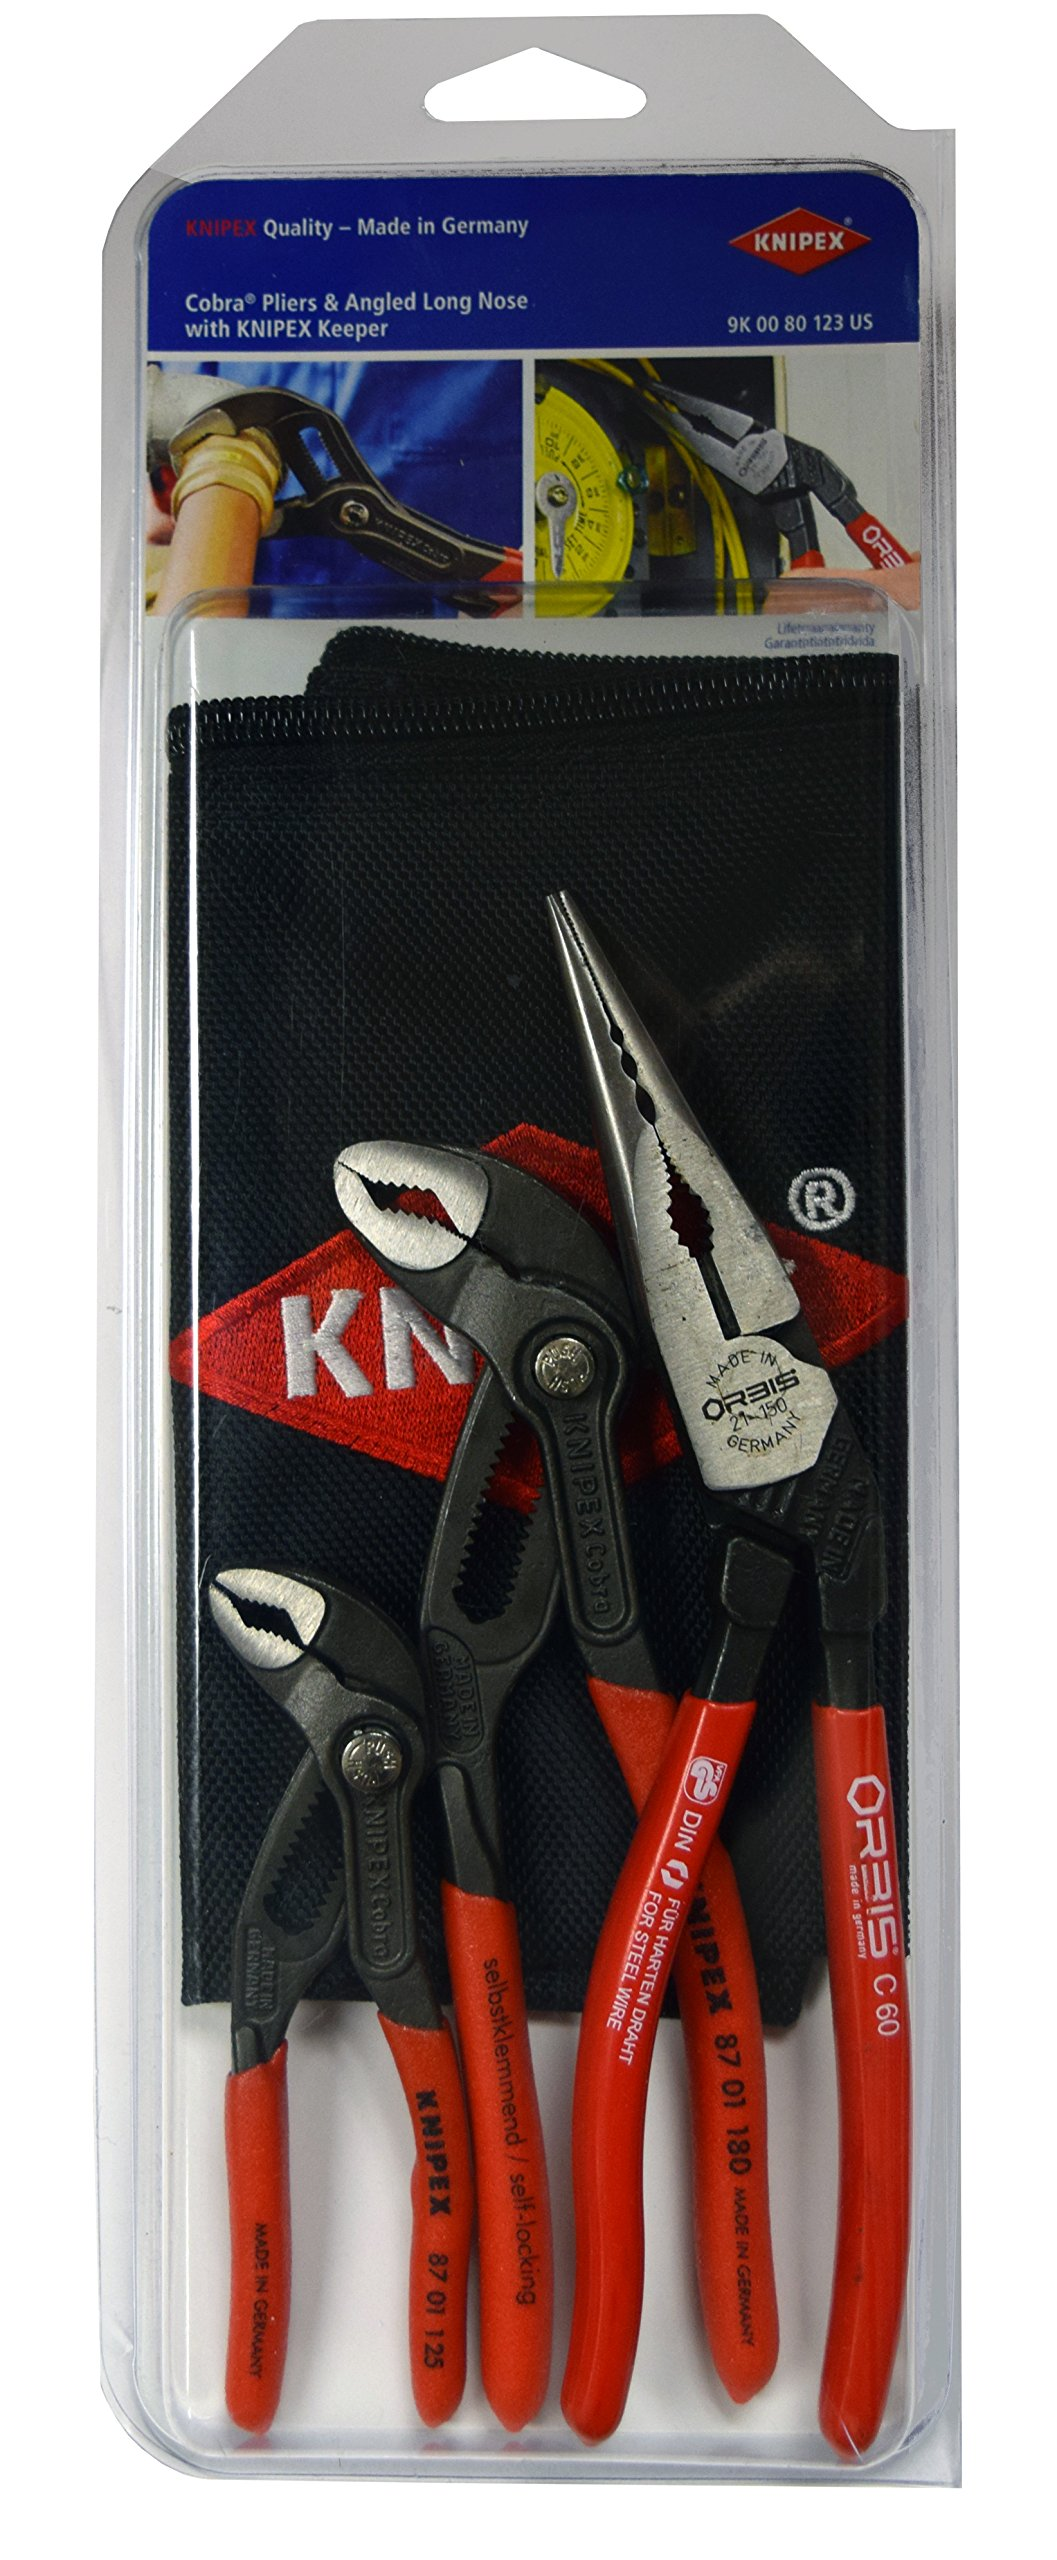 Knipex Tools 9k 00 80 123 US US Cobra Pliers and Angled Pliers Tools Set with Keeper Pouch (3 Piece) by KNIPEX Tools